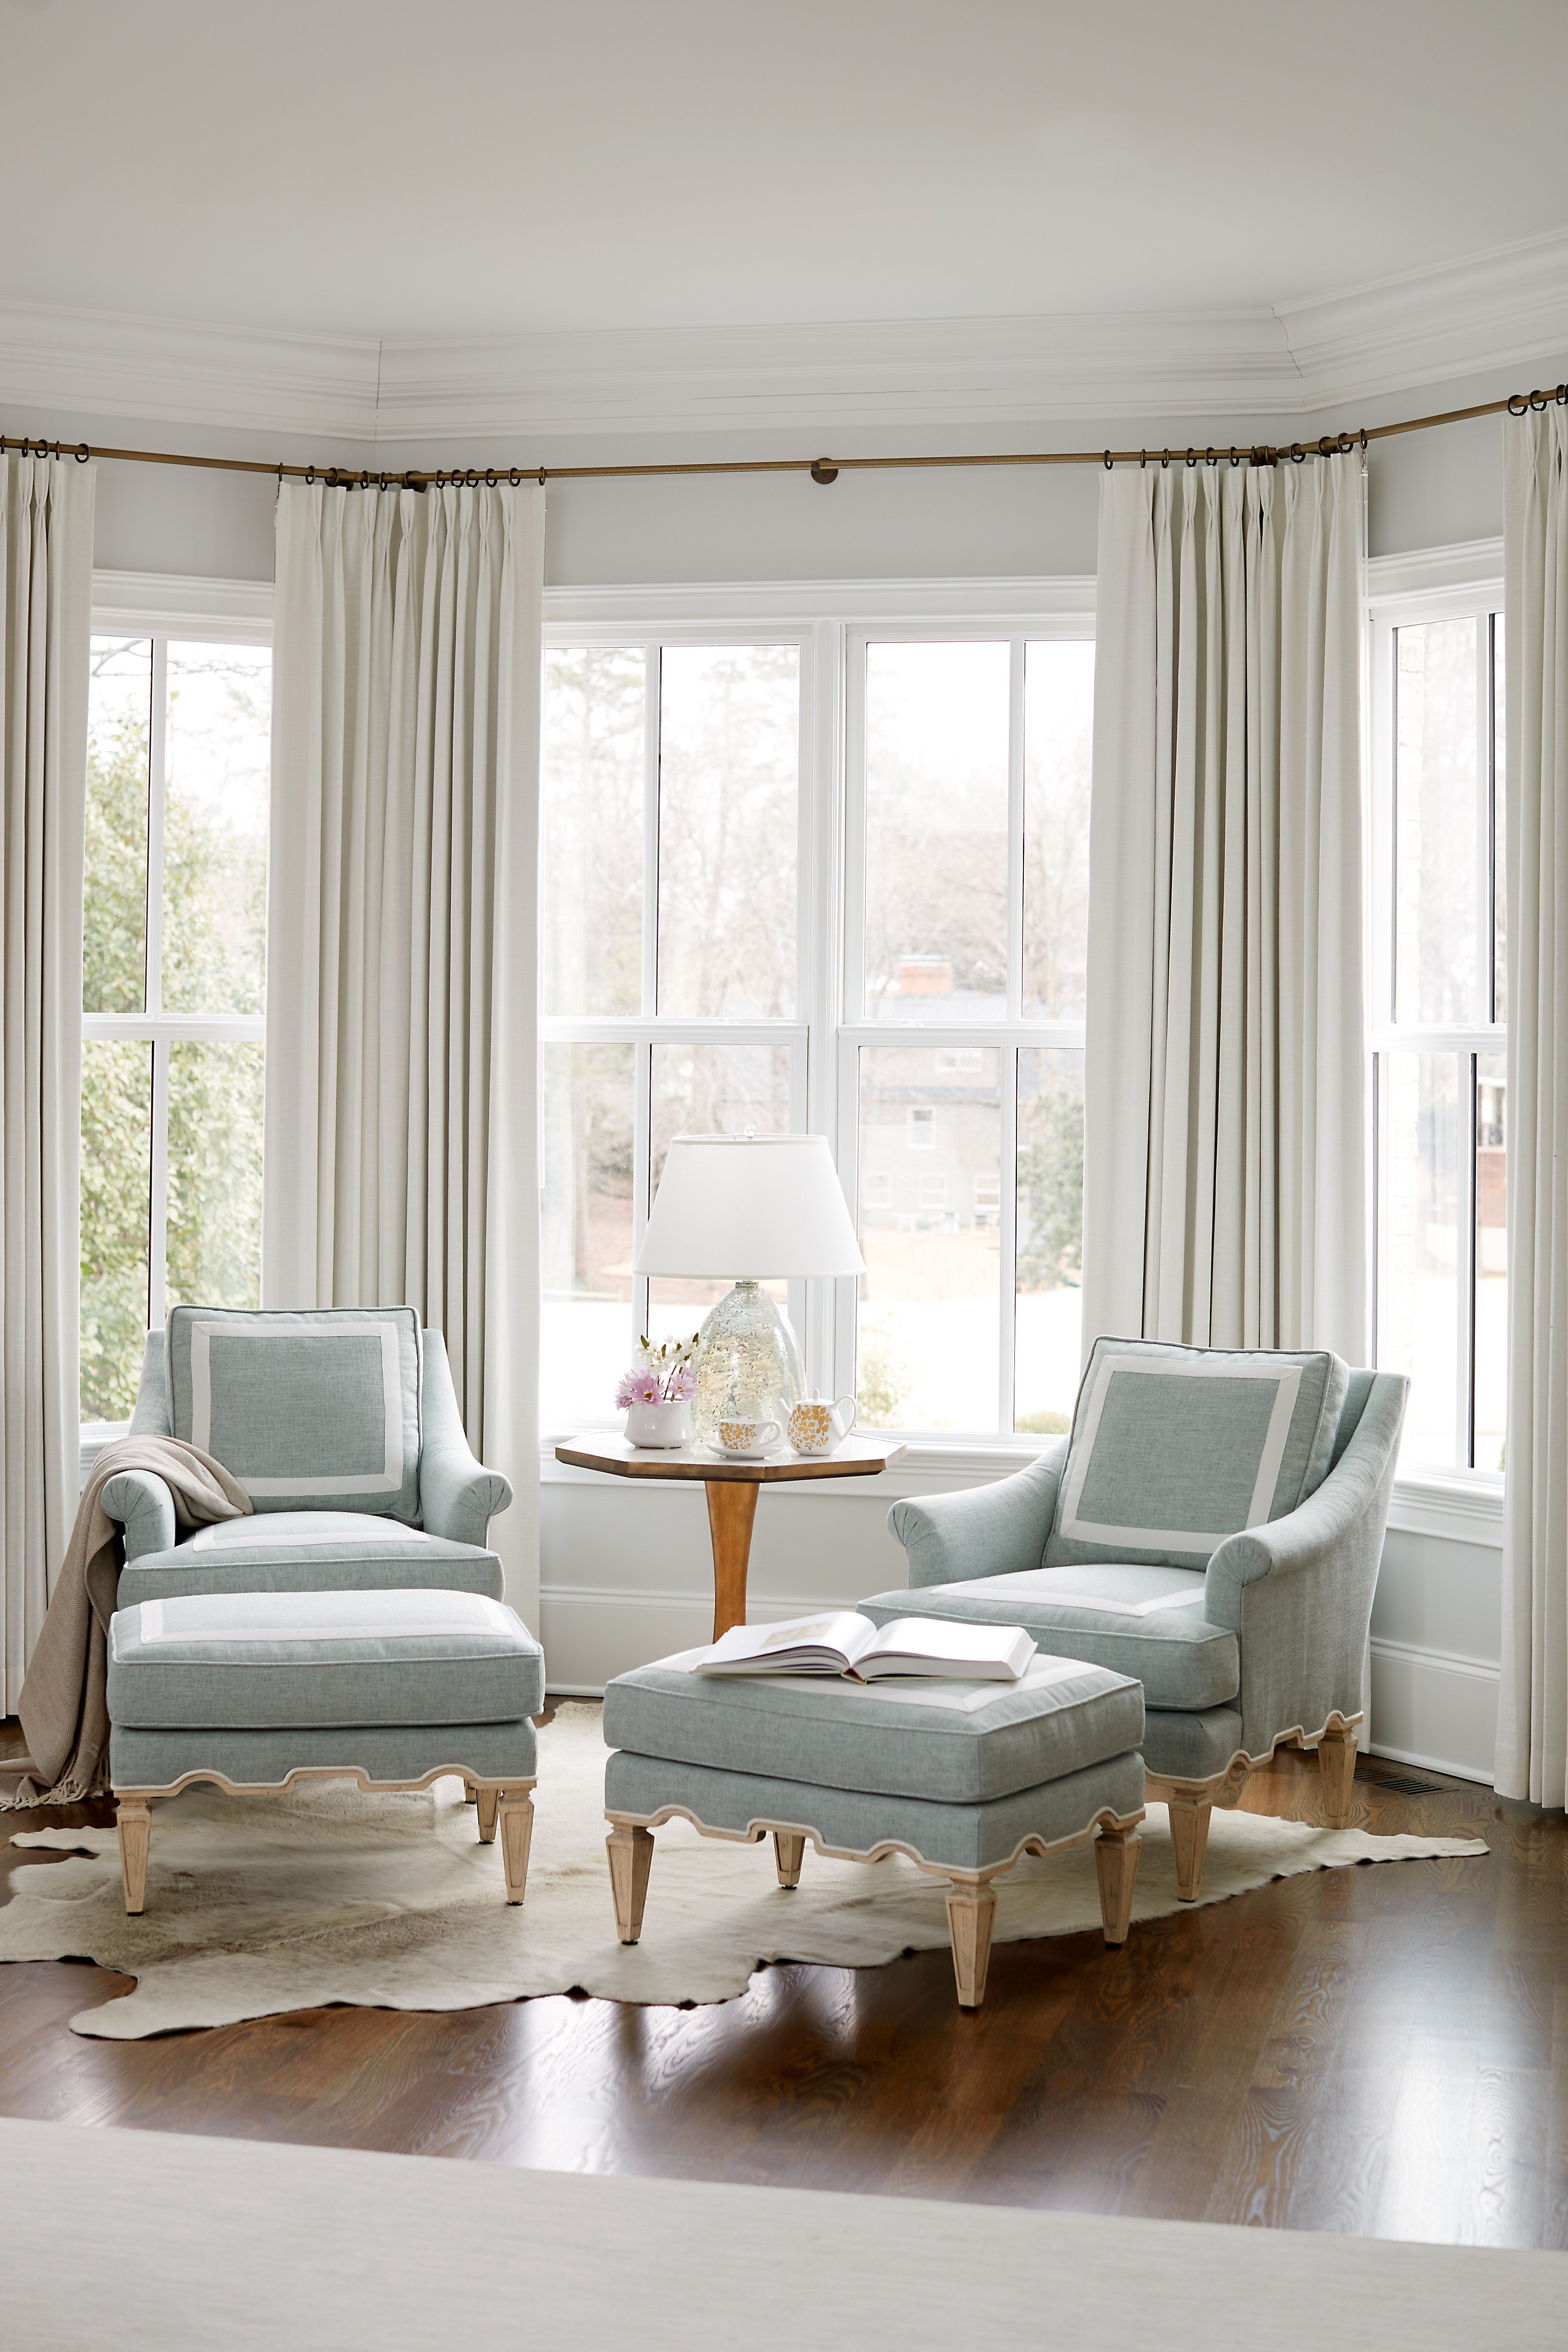 10 Spectacular Bay Window Ideas To Brighten Up Your Room Living